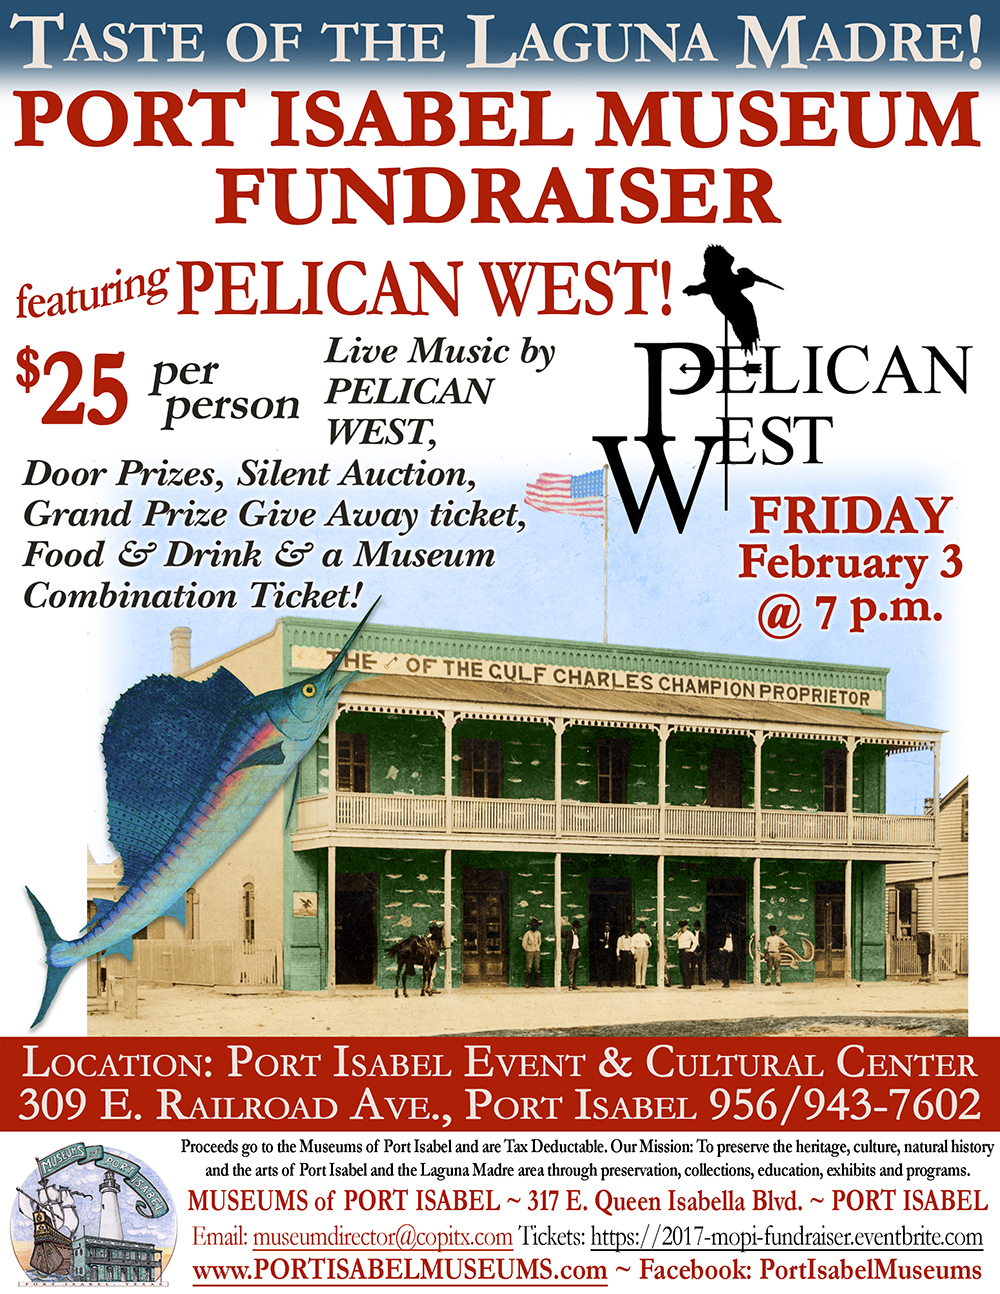 The Museums of Port Isabel are proud to announce its 20th Annual 'TASTE of the LAGUNA MADRE' Museum Fundraiser featuring fresh local fare & PELICAN WEST! The Museums of Port Isabel will host this culinary event on Friday, February 3, 2017, from 7 to 10 p.m. at the Port Isabel Event & Cultural Center. Dishes prepared by local restaurants will be top of the fare and includes side dishes, desserts and beverages. Live music by PELICAN WEST, door prizes, a silent auction and a Port Isabel Adventure Package raffle are all part of the $25 ticket price. This IS the Museums of Port Isabel's major fundraiser. Donations will be used to upgrade Museum's exhibits and support programs. Info: 956/943-7602 or museumdirector@copitx.com. Tickets can be purchased at the door, Port Isabel City Hall, Port Isabel Public Library, Port Isabel Chamber of Commerce, South Padre Island Chamber of Commerce or at the Museums of Port Isabel.